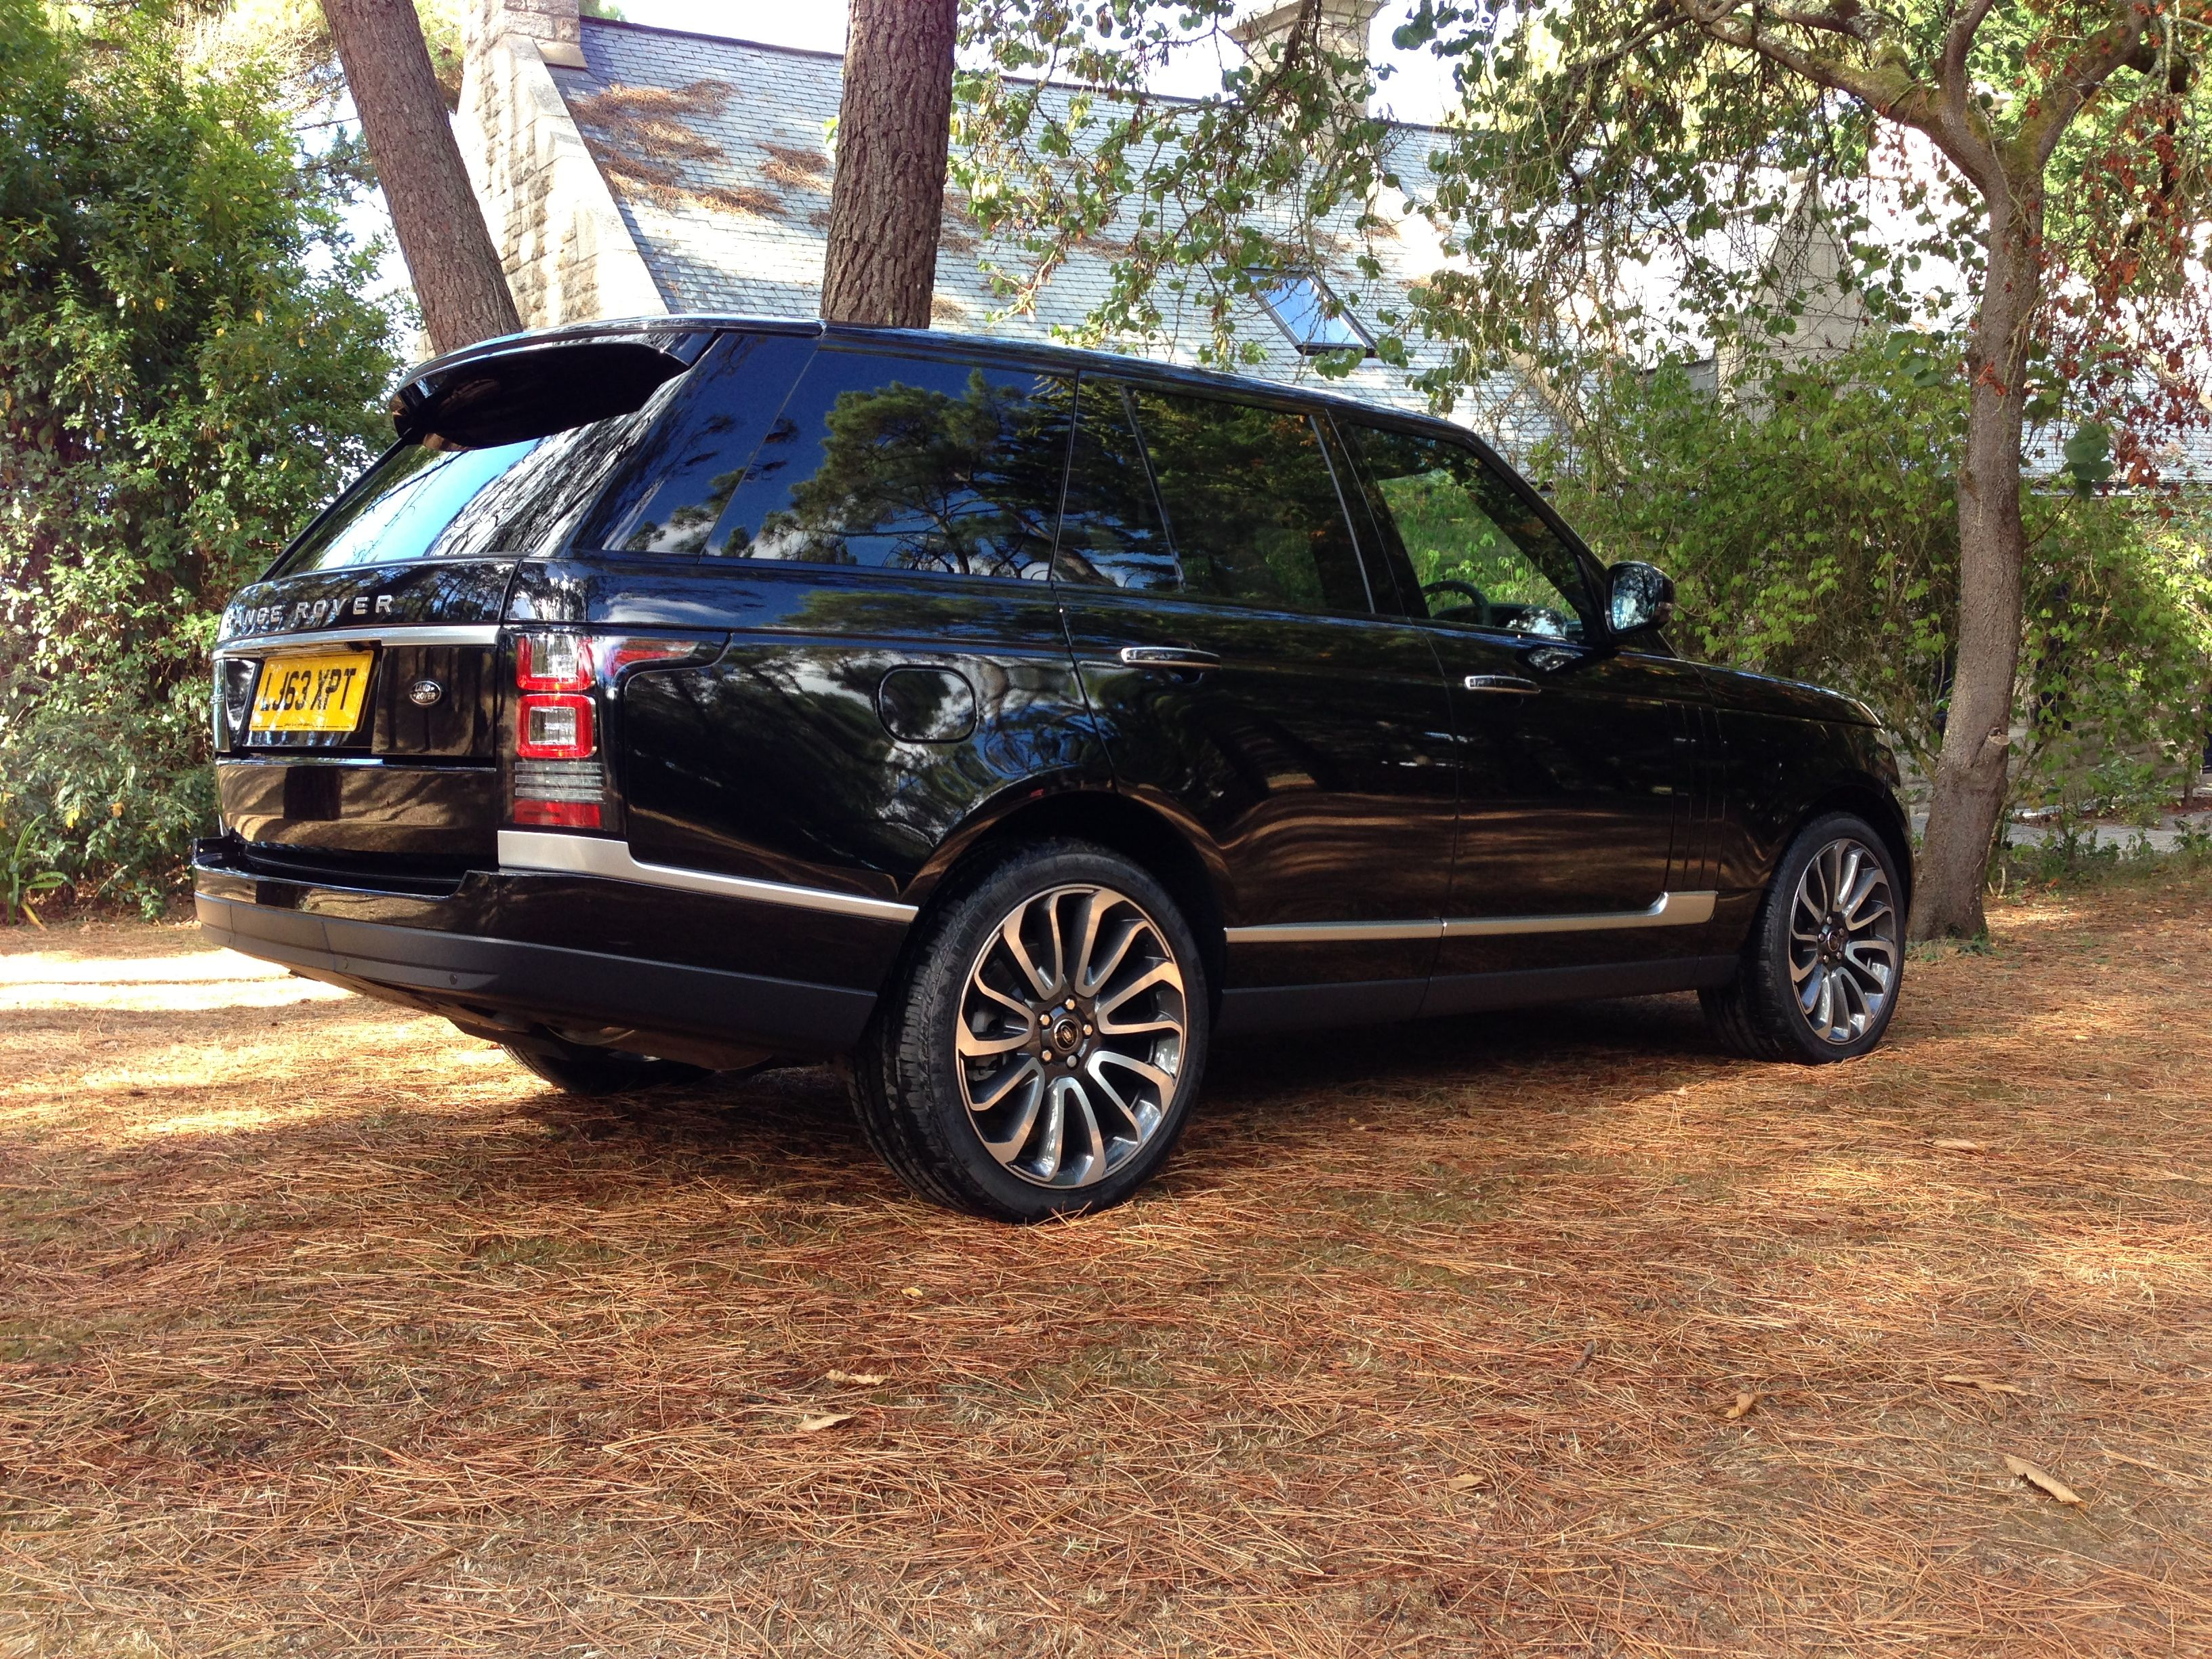 Range Rover Vogue SE available for rental in Cote d Azur and